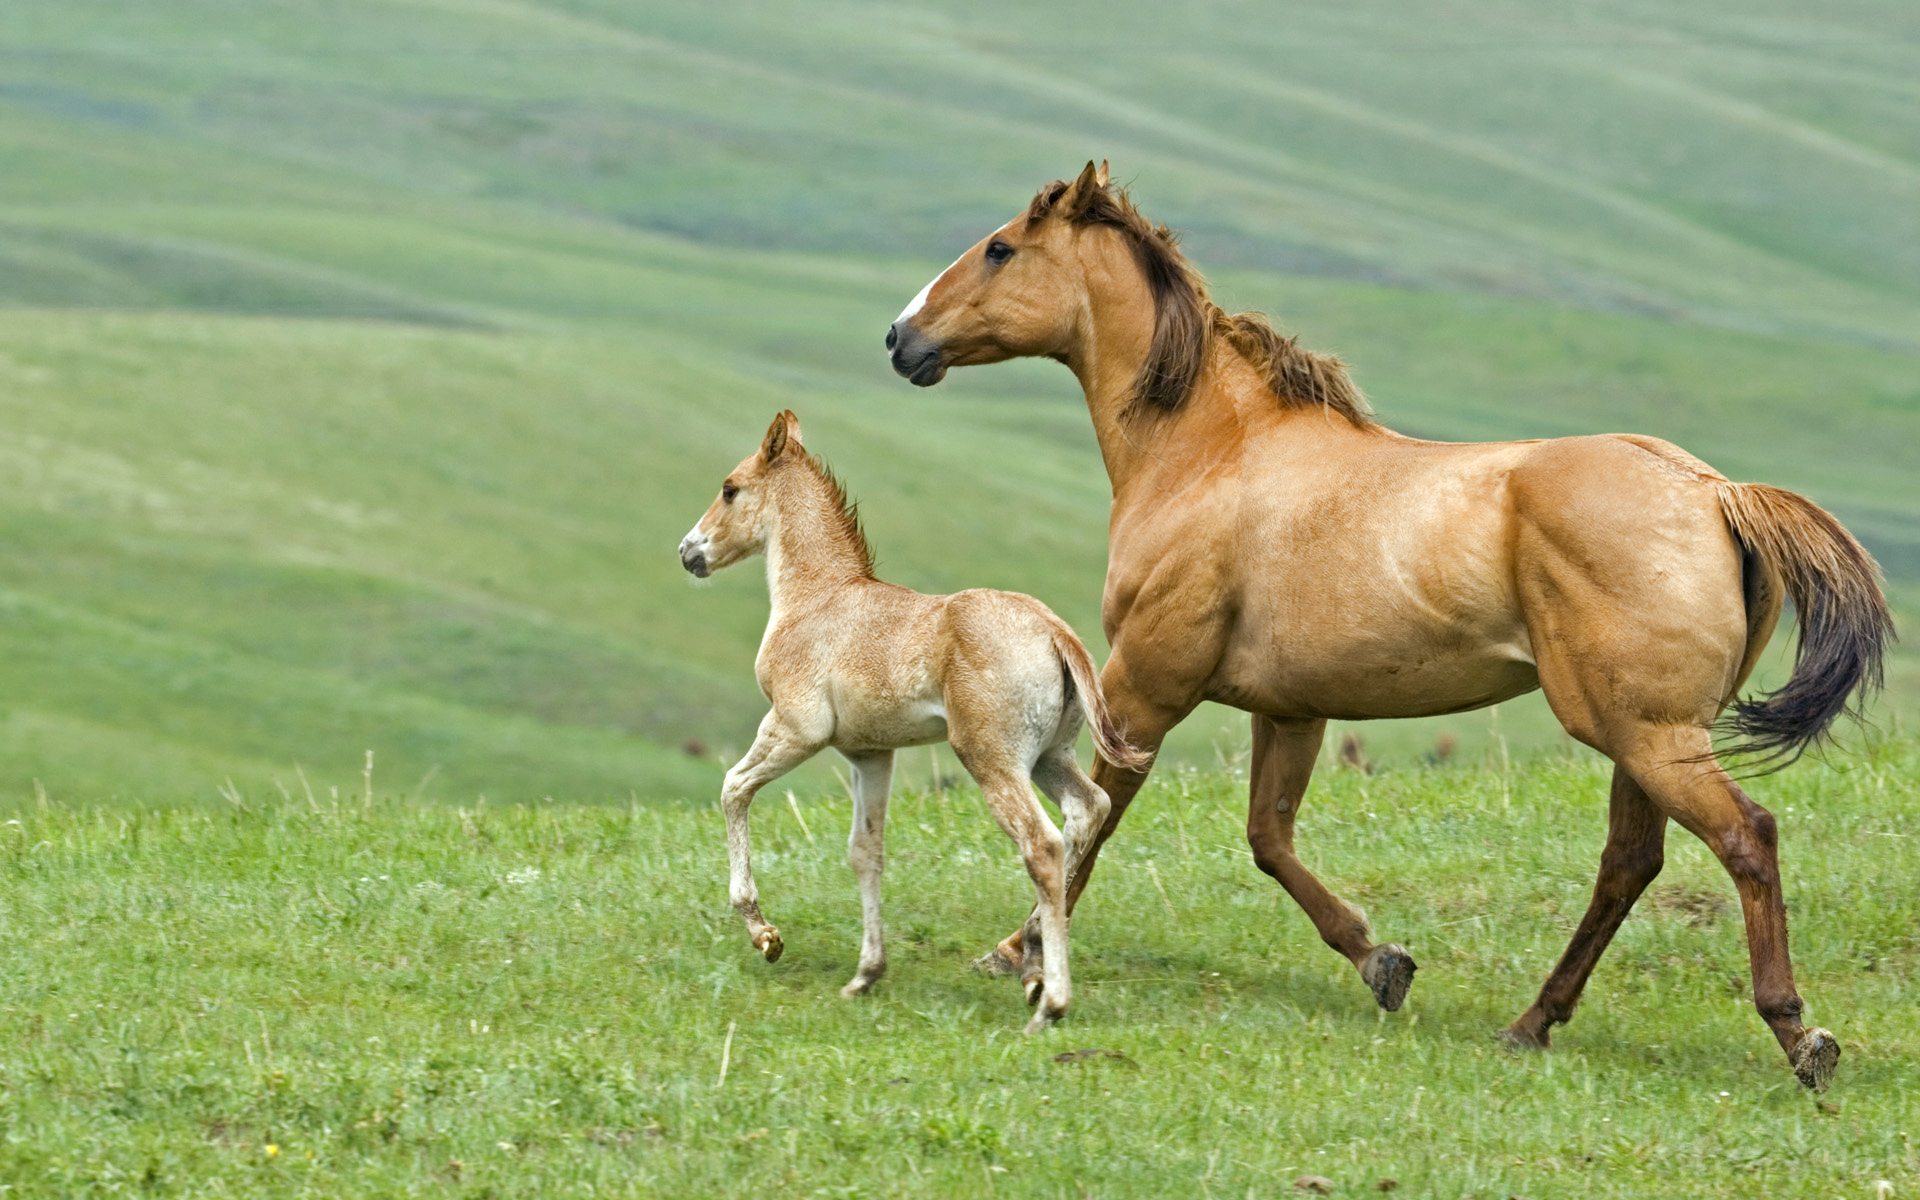 What is a foal?